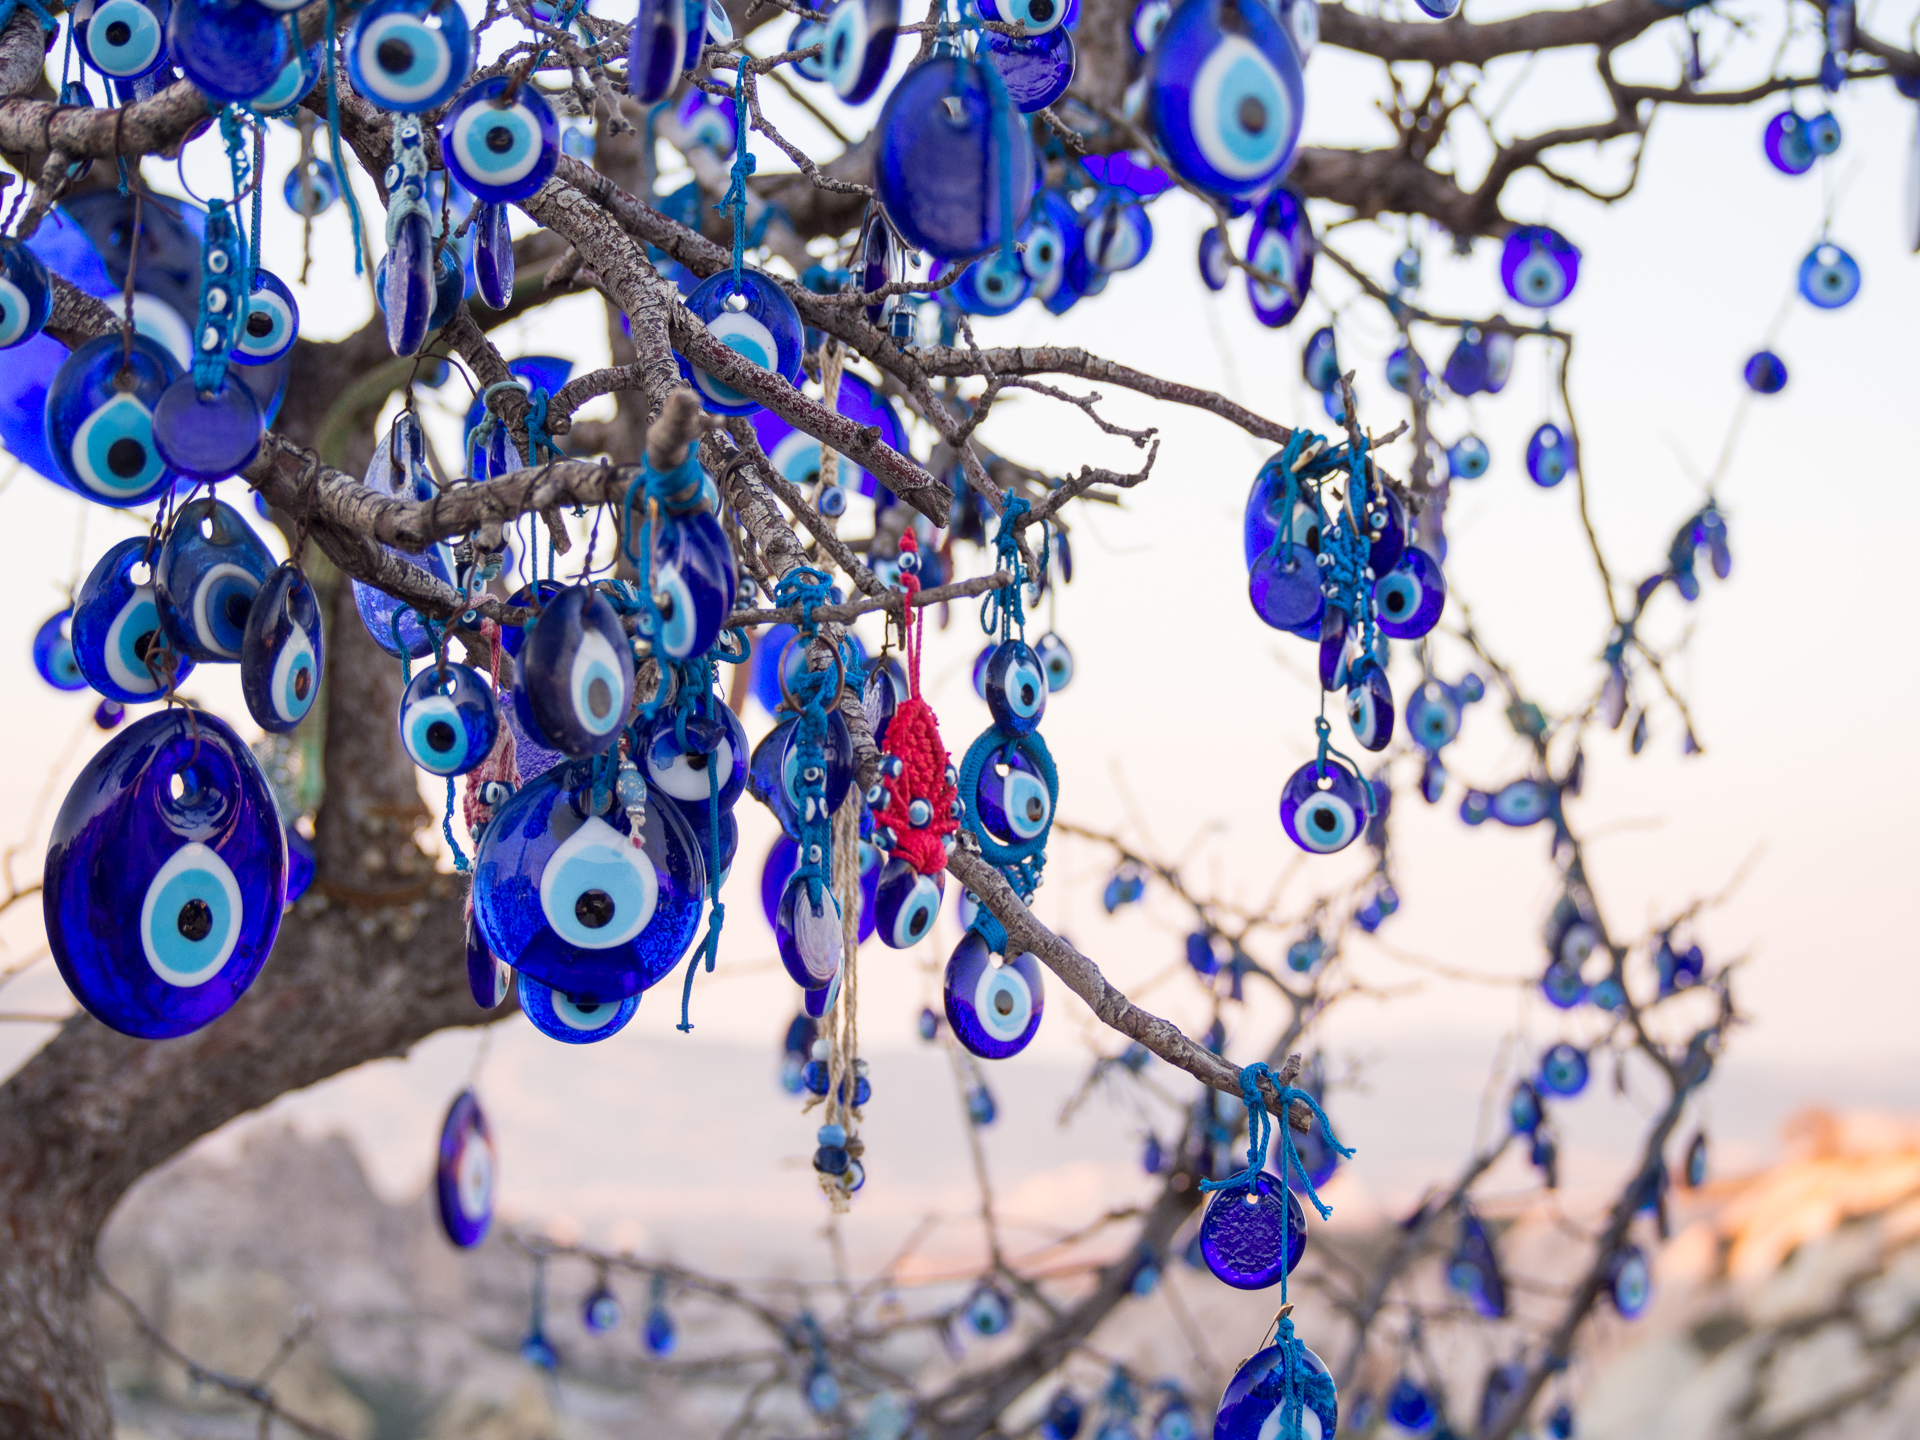 Tree with nazar (eye-shaped amulet believed to protect